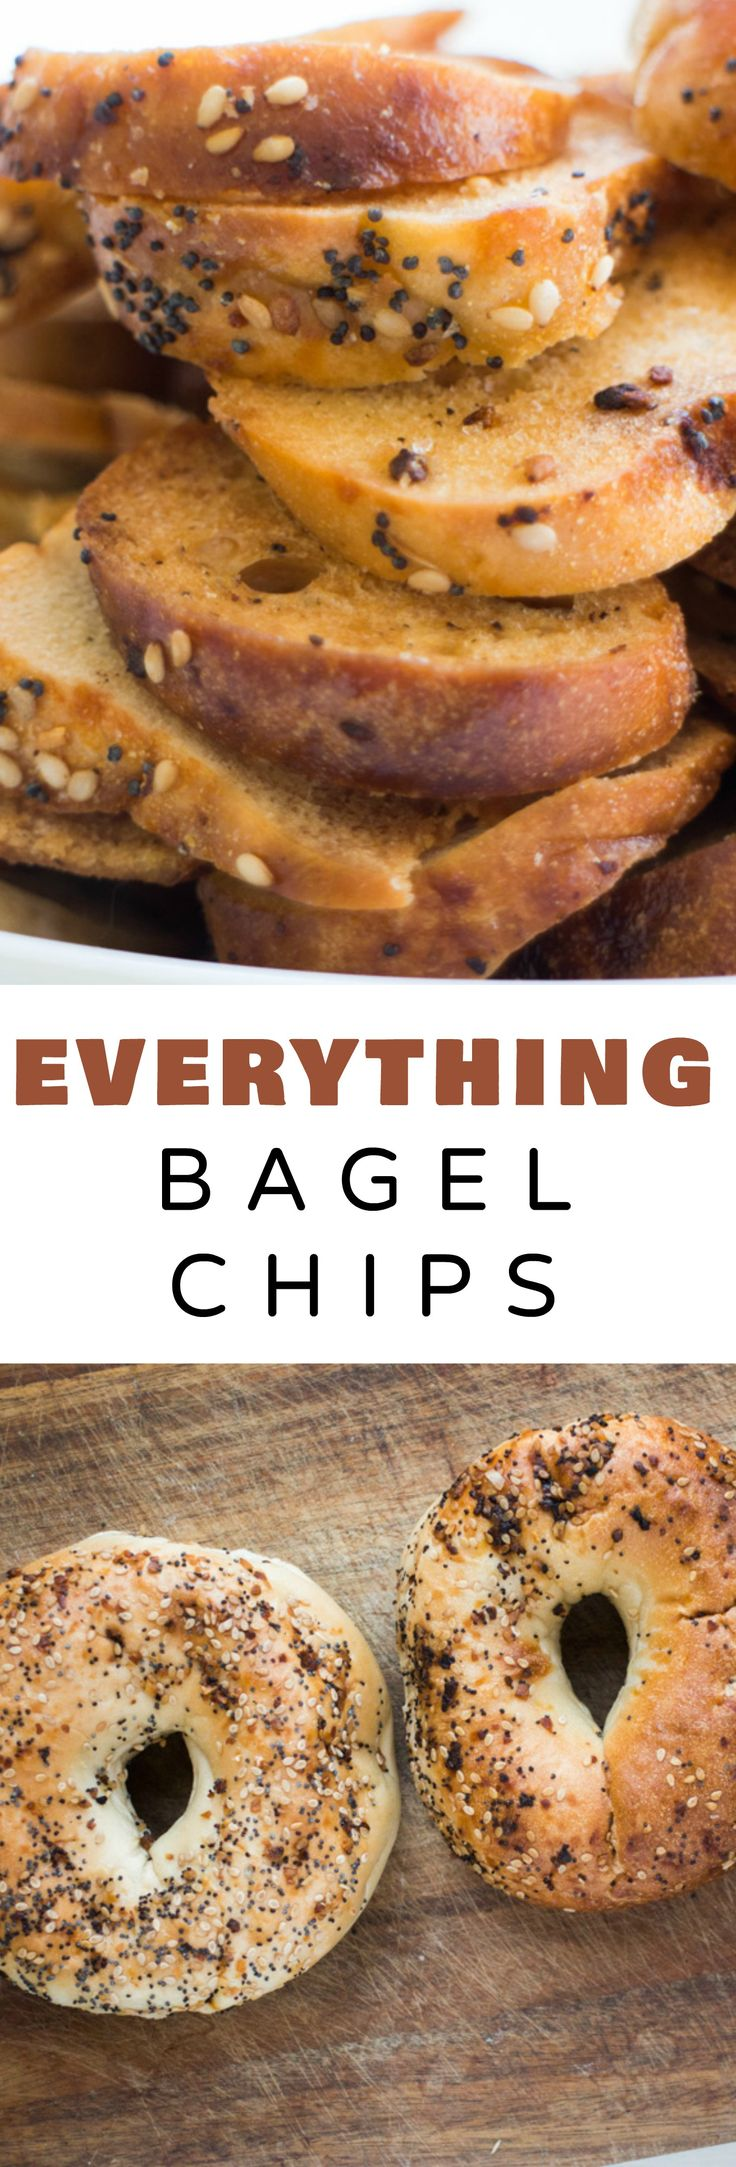 CRUNCHY homemade Everything Bagel Chips! This recipe is easy to make and only requires 3 ingredients! These DIY NYC bagel chips are perfect for snacks and appetizers! Save money and start making your own crispy baked Bagel Chips!